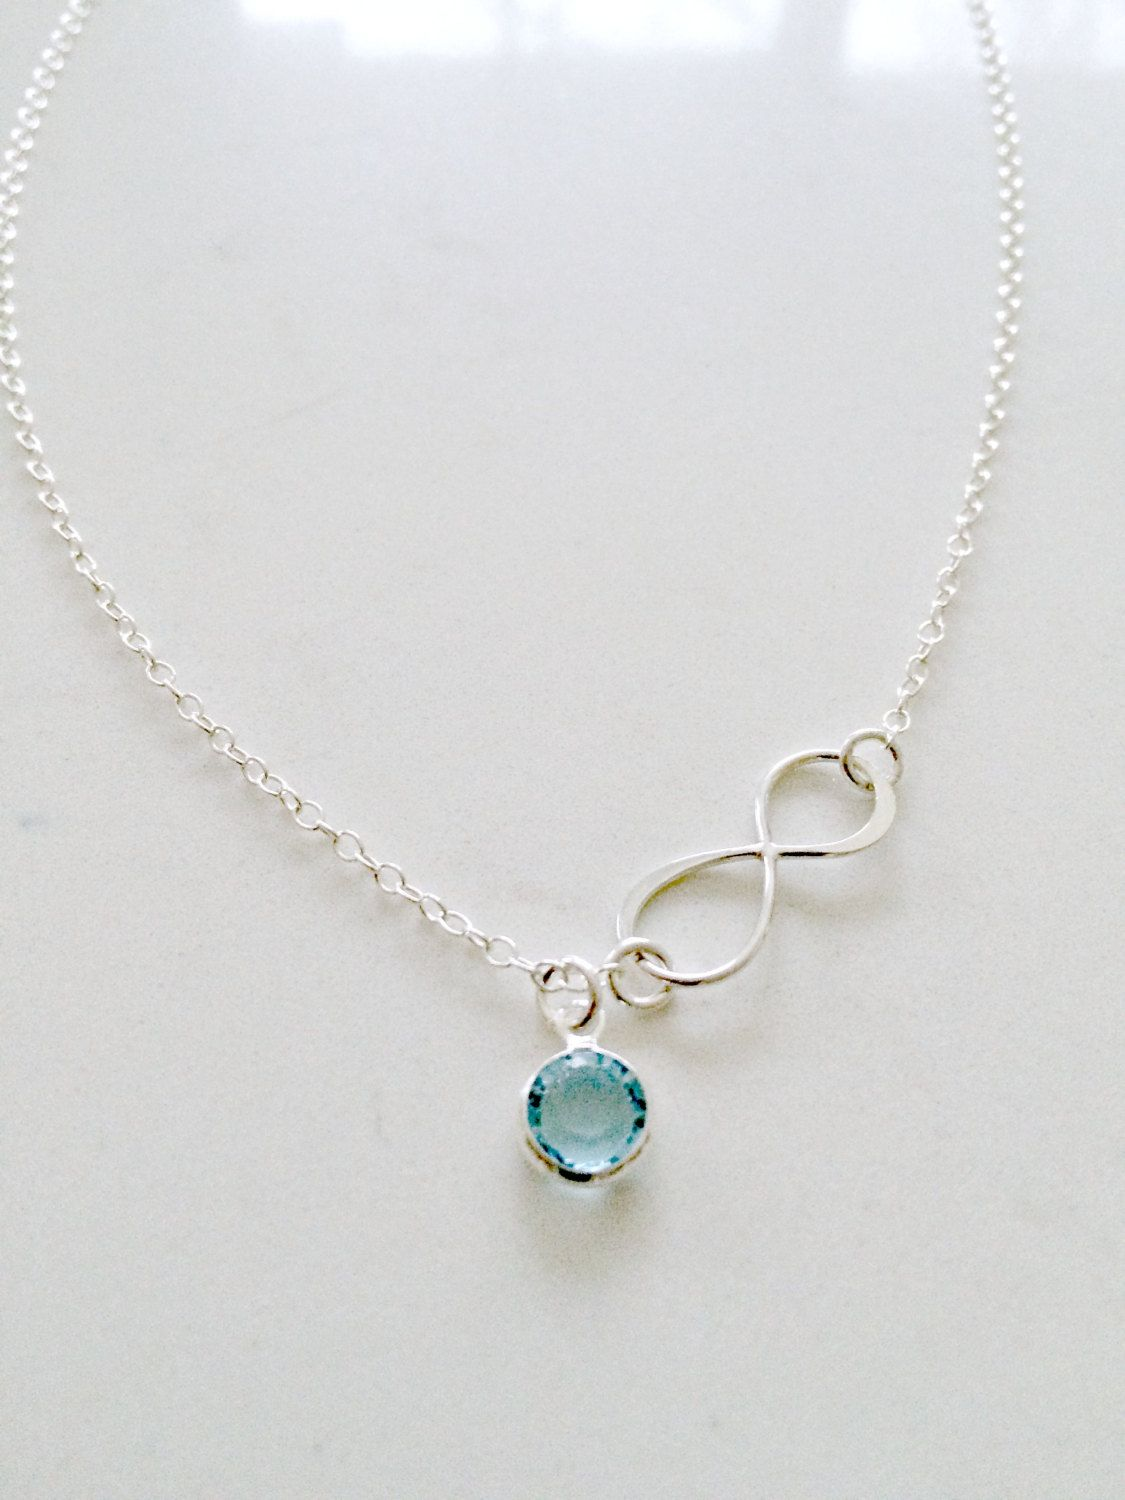 925 Sterling Silver March Birthstone Created Aquamarine Pendant Necklace Gifts